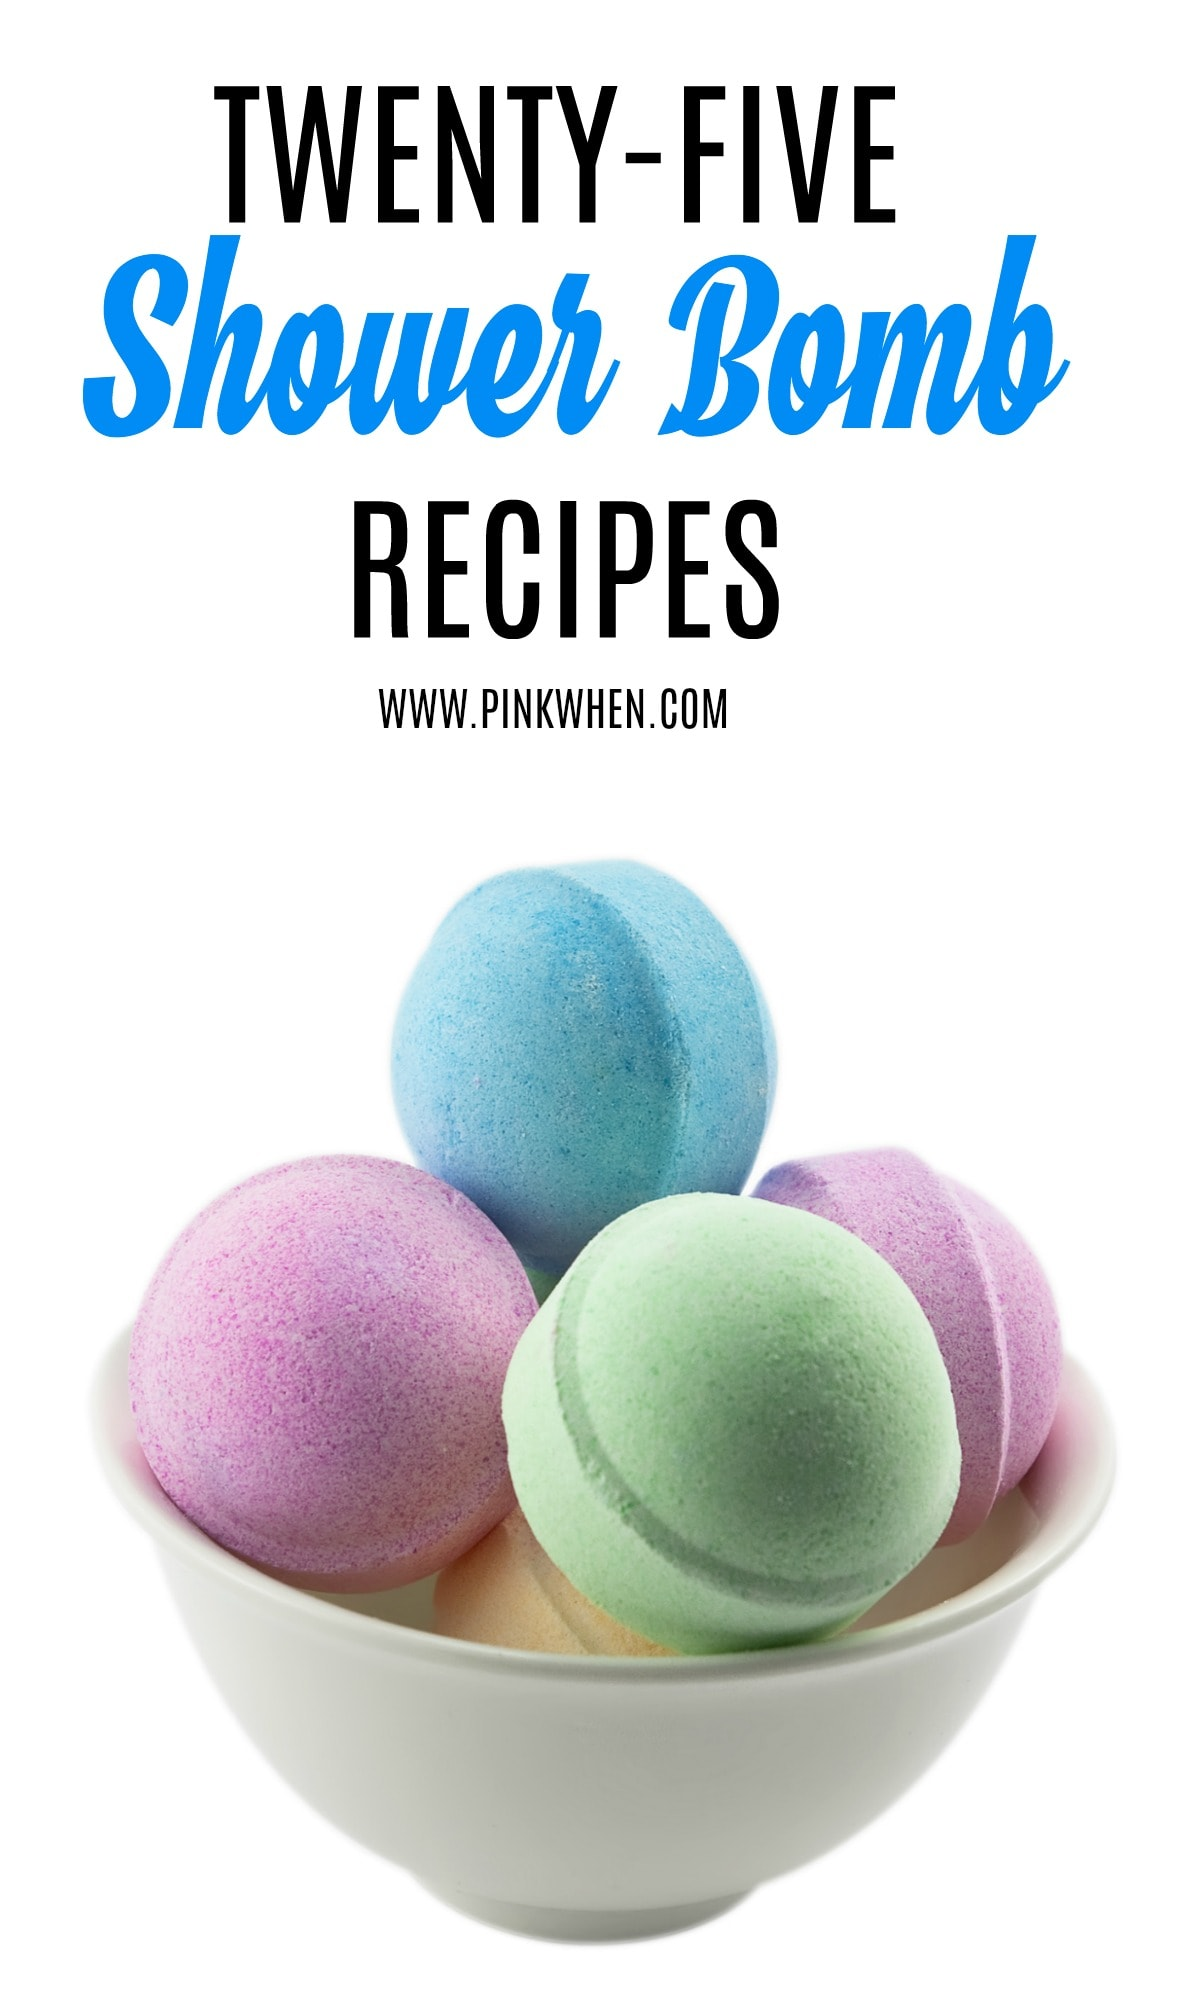 Check out our list of 25 Shower Bombs That Make Perfect Gifts for any occasion! These are ideal for soothing, having fun making with kids, and more!